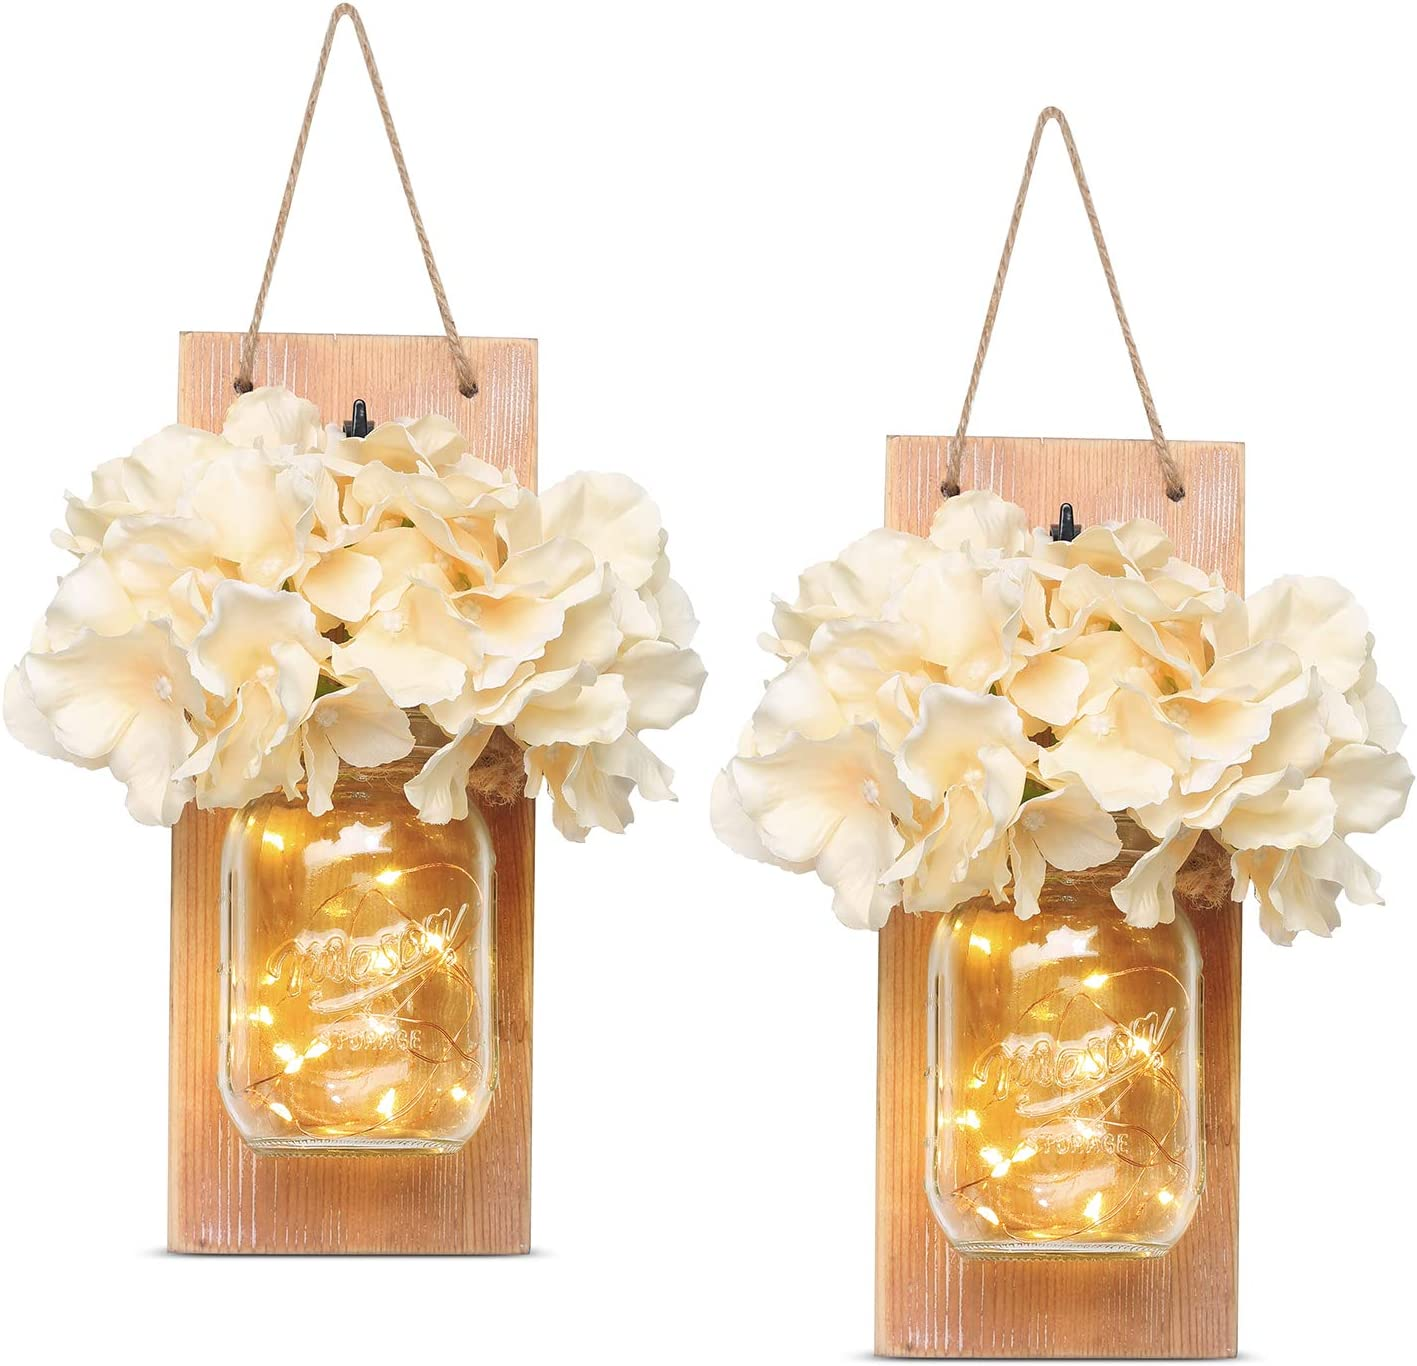 HABOM Rustic Mason Jar Wall Decor Sconces - Decorative Home Lighted Country House Hanging with 6 Hour Timer LED Fairy Strip Lights and Flowers Hydrangea Farmhouse Sconce Jars (Set of 2)